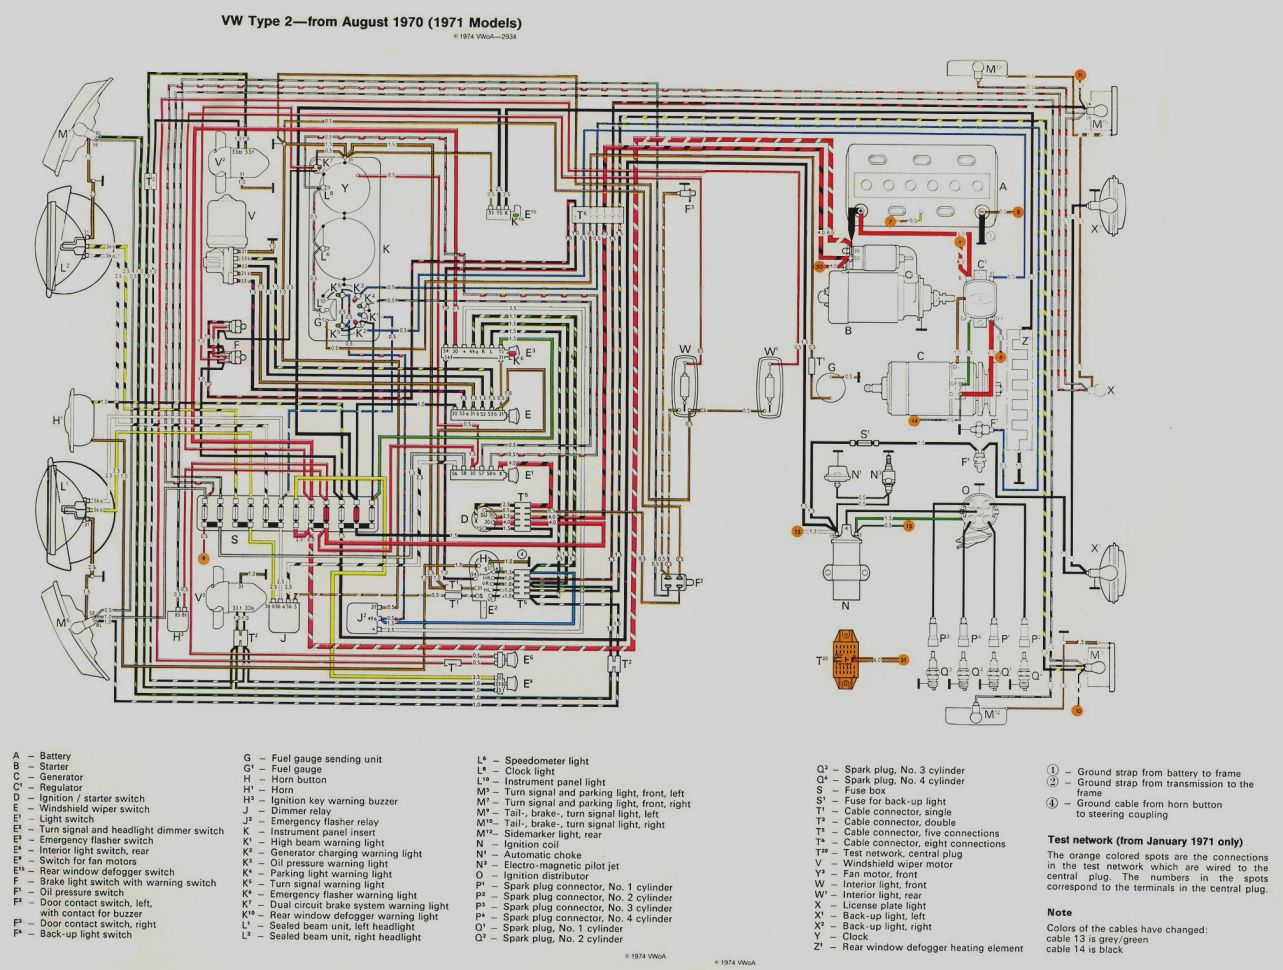 vw golf wiring diagram wire management wiring diagram volkswagen golf wiring circuit [ 1283 x 970 Pixel ]